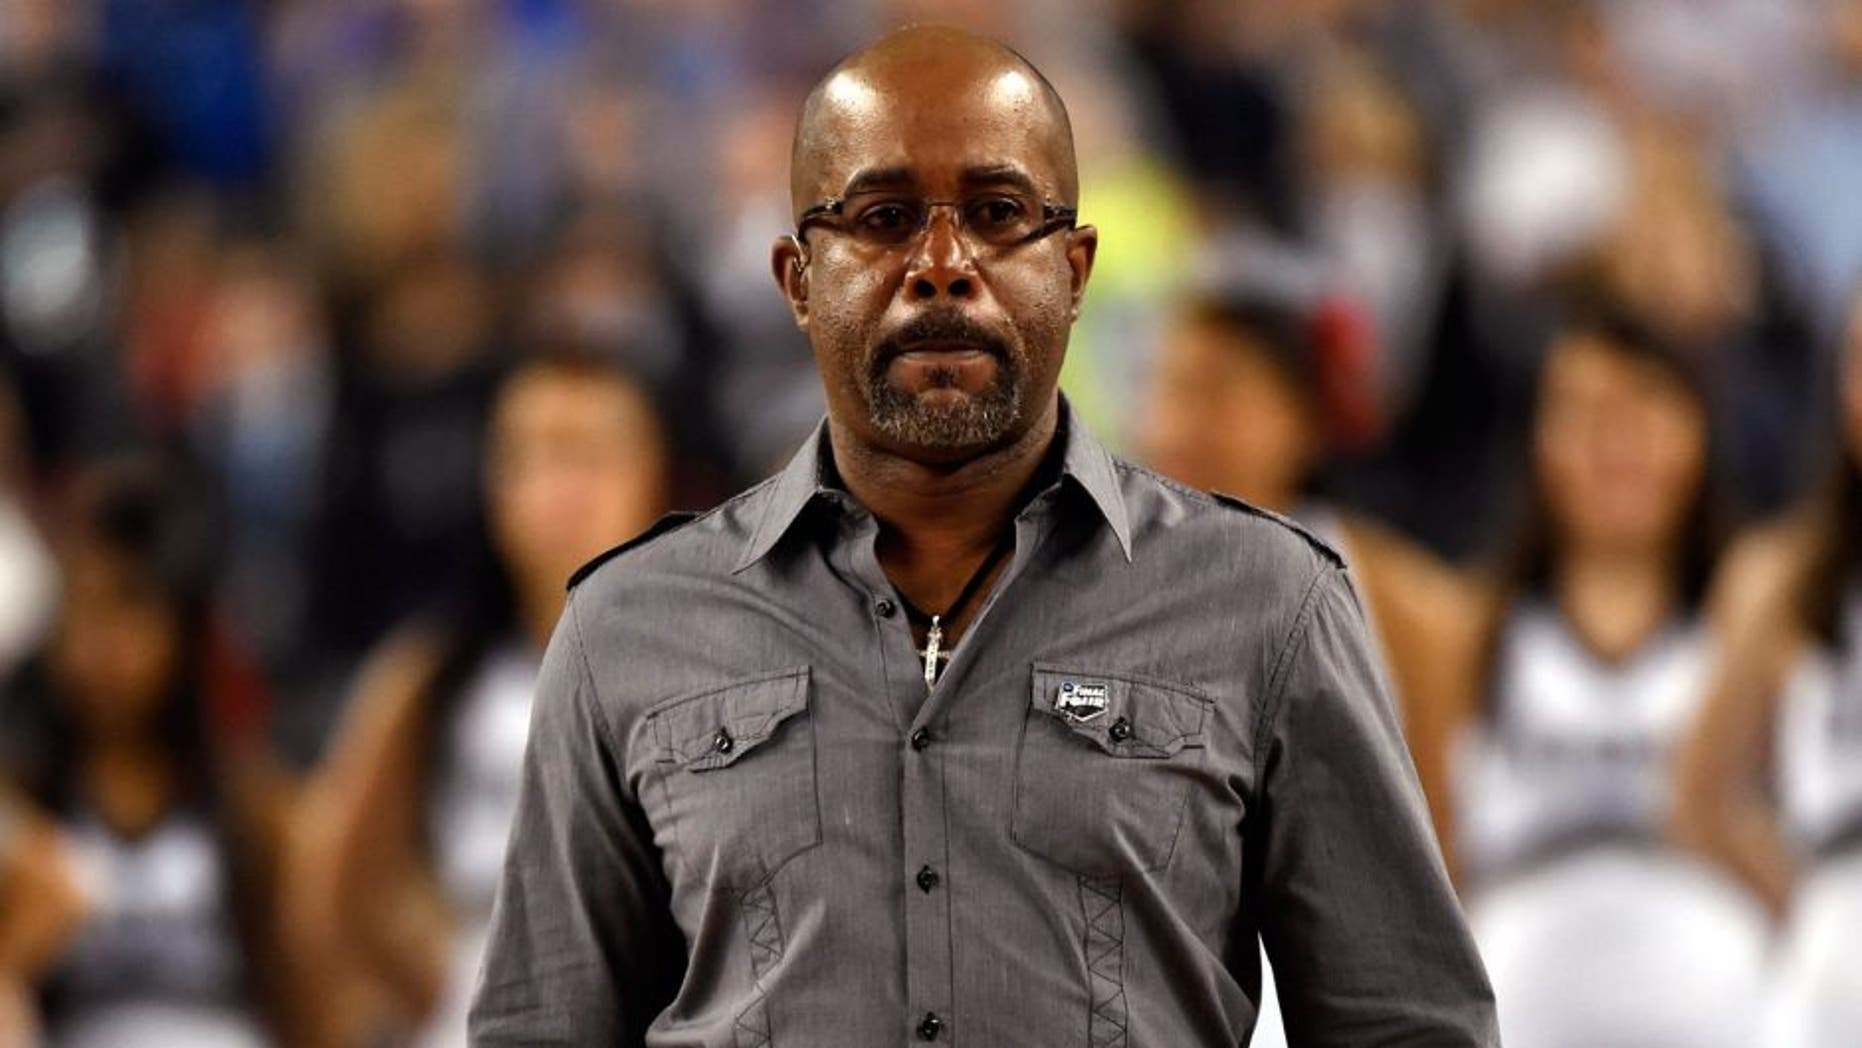 Apr 7, 2014; Arlington, TX, USA; Recording artist Darius Rucker comes out to sing the national anthem before the championship game of the Final Four in the 2014 NCAA Mens Division I Championship tournament between the Connecticut Huskies and Kentucky Wildcats at AT&T Stadium. Mandatory Credit: Robert Deutsch-USA TODAY Sports